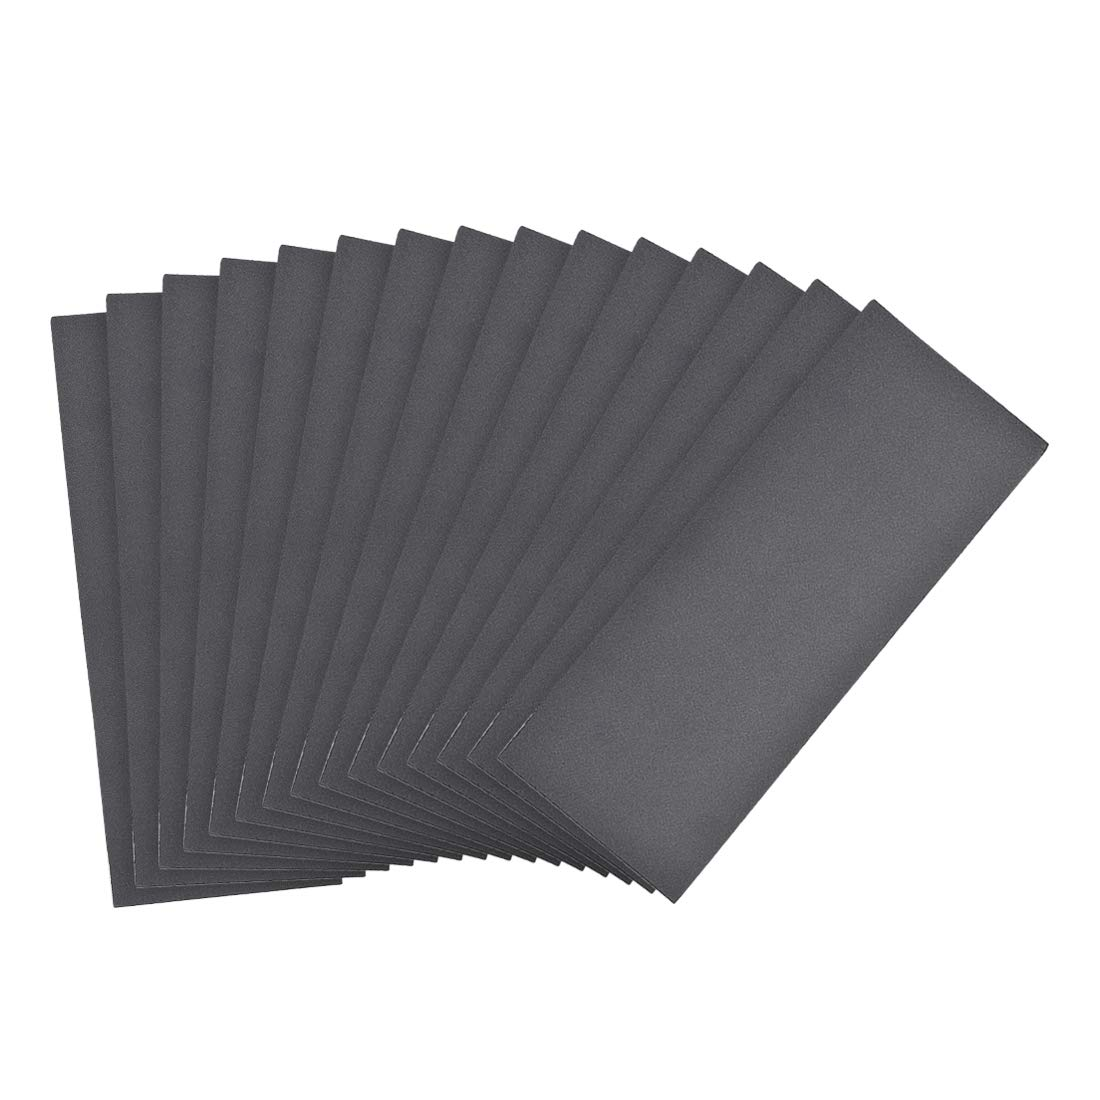 uxcell 500 Grits Wet Dry Sandpaper 9 x 3.7 Waterproof Sandpaper Sheets Silicon Carbide 15pcs